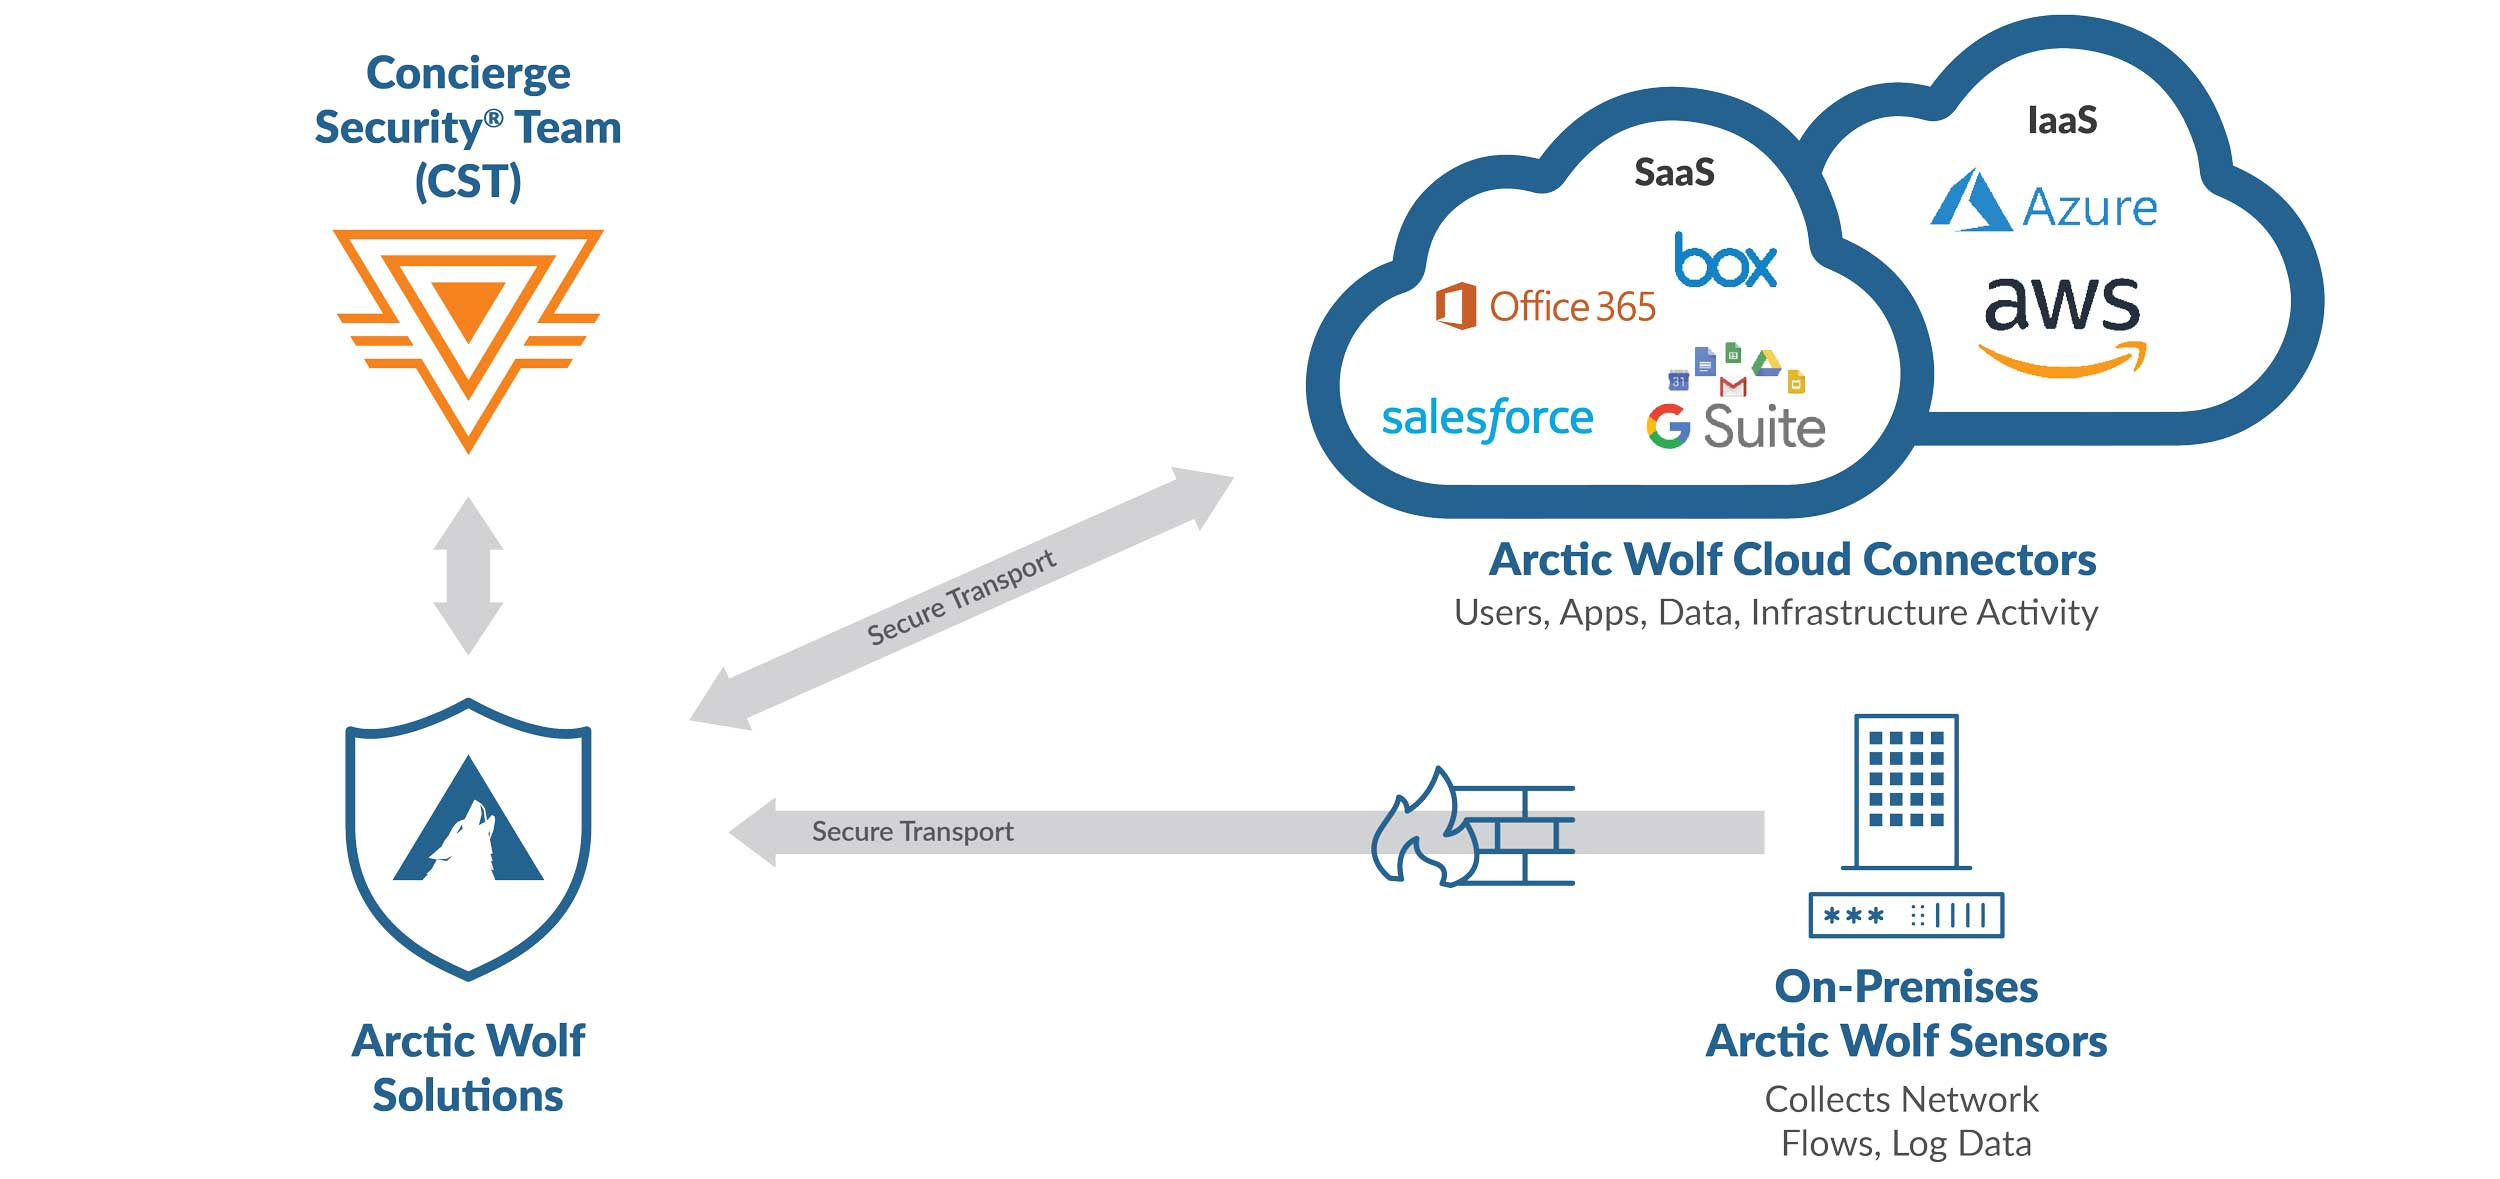 Concierge Security Team with graphic connecting to Arctic Wolf Solutions and secure transport to AW Cloud connectors and on-premises AW sensors